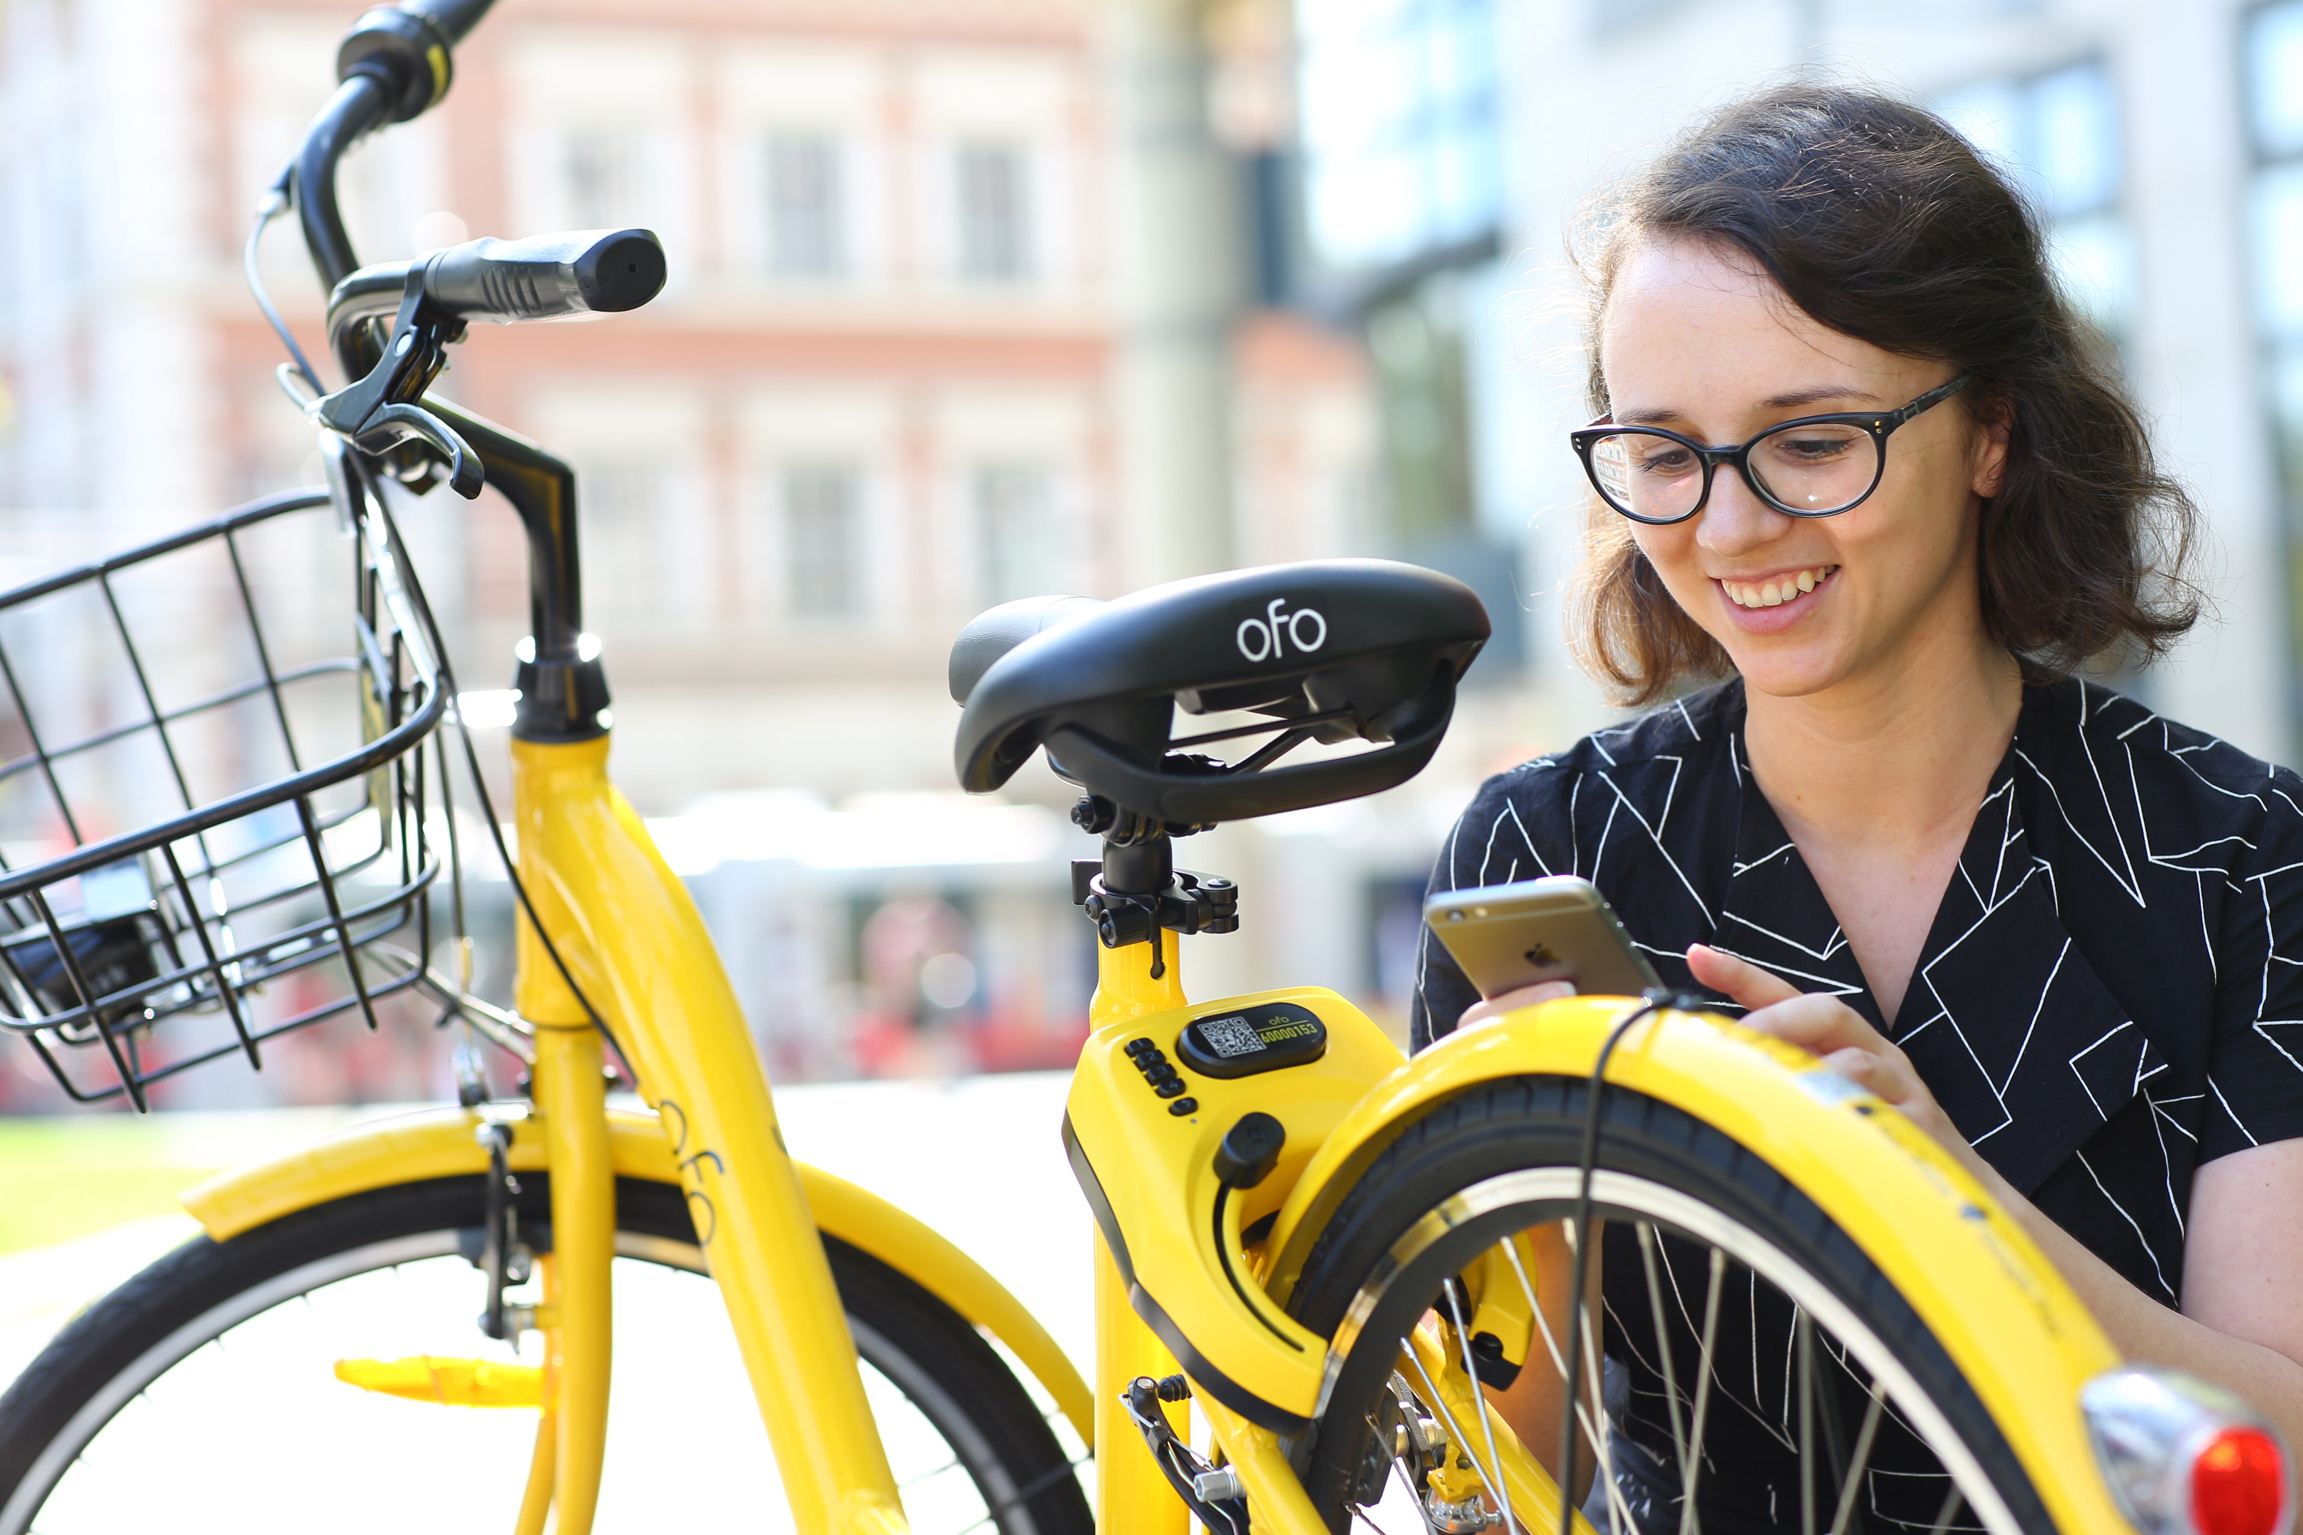 Bike-Sharing-Systeme: AIT optimiert Standortplanung